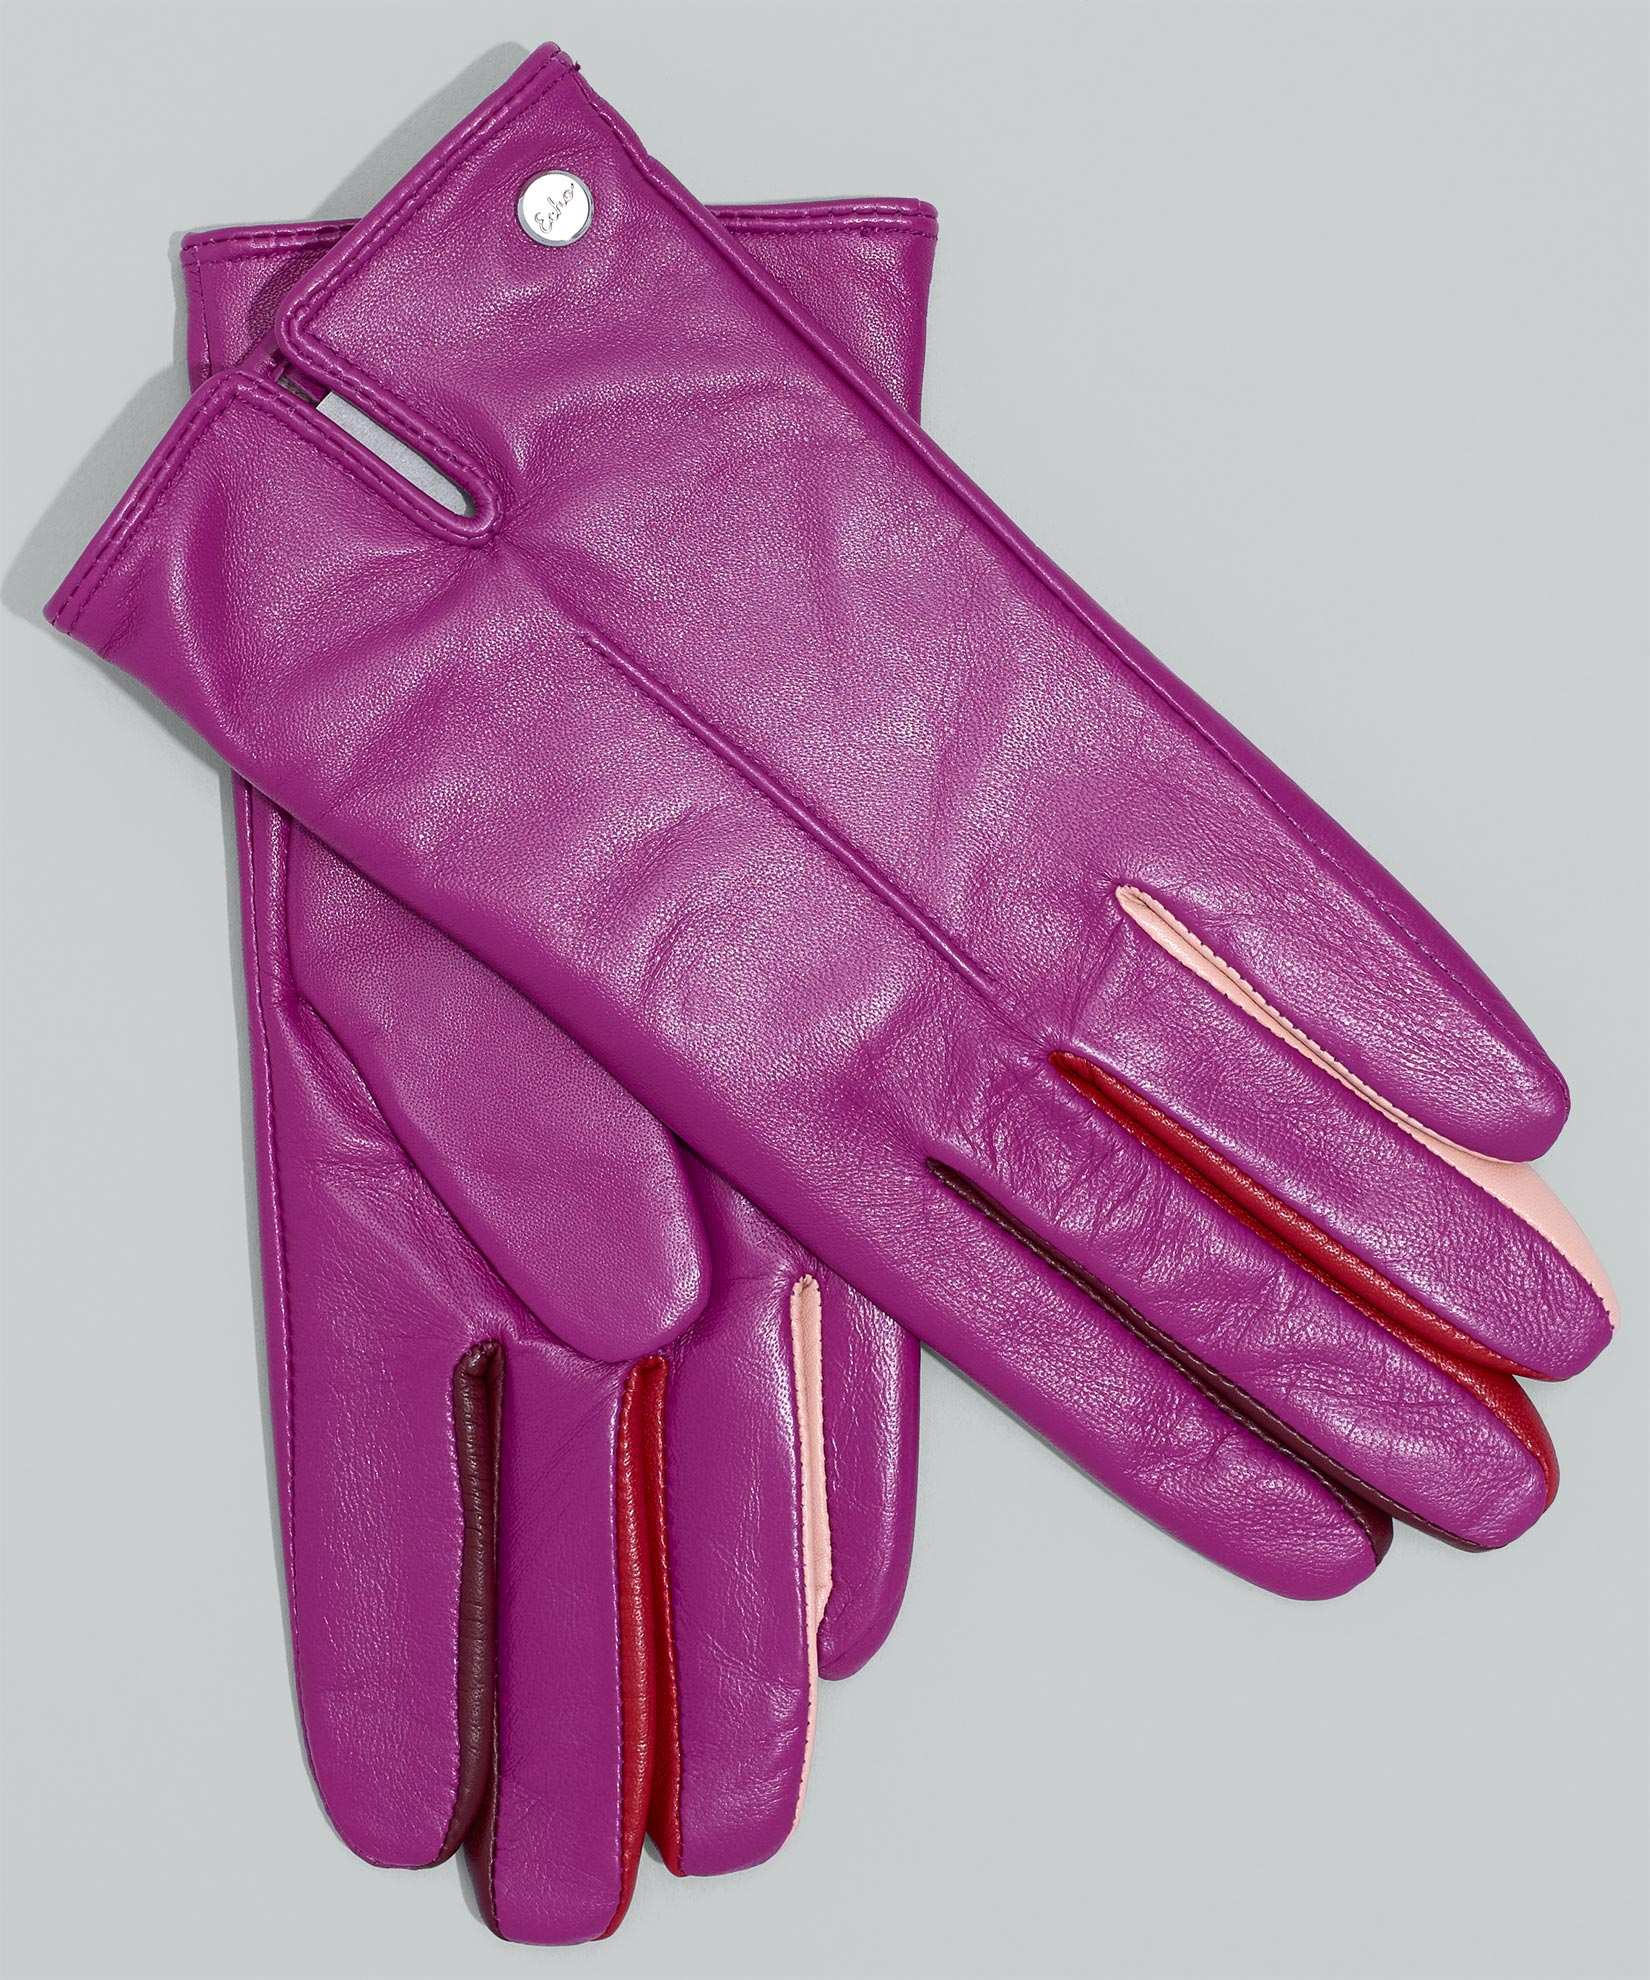 Indian Rose - Leather Colorblock Fourchette Glove